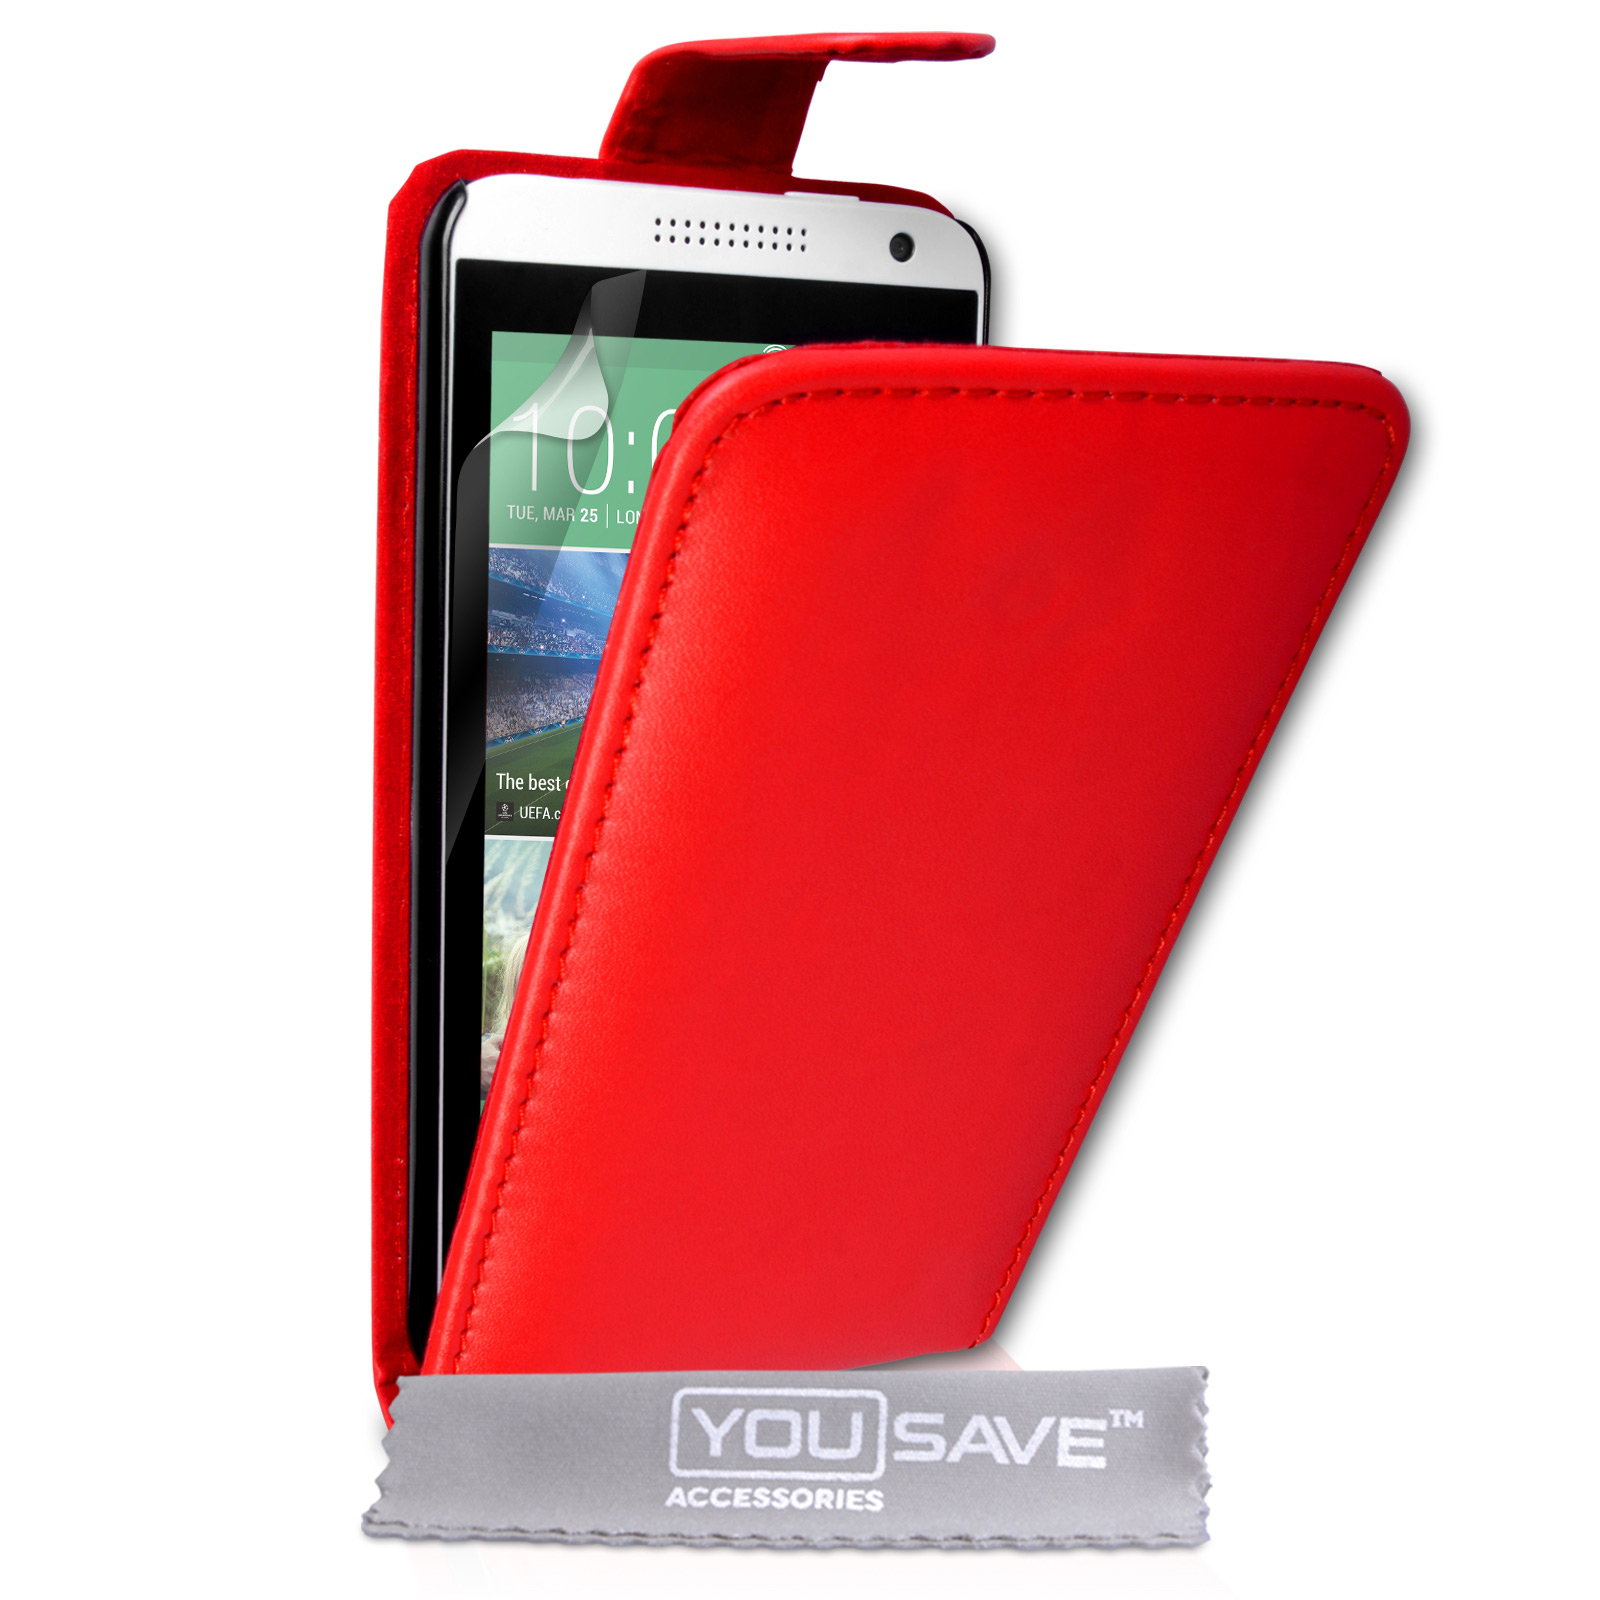 YouSave Accessories HTC Desire 610 Leather-Effect Flip Case - Red